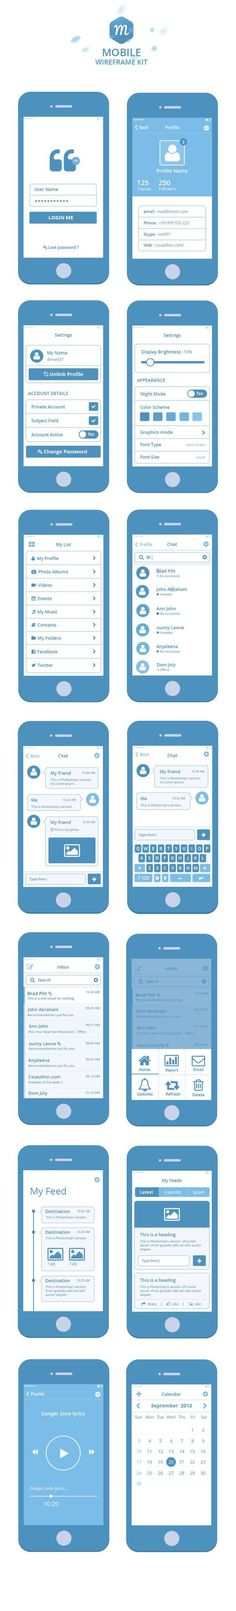 Inspiration Mobile #13 : Ui Kits et Wireframes pour vos applications | Blog du Webdesign